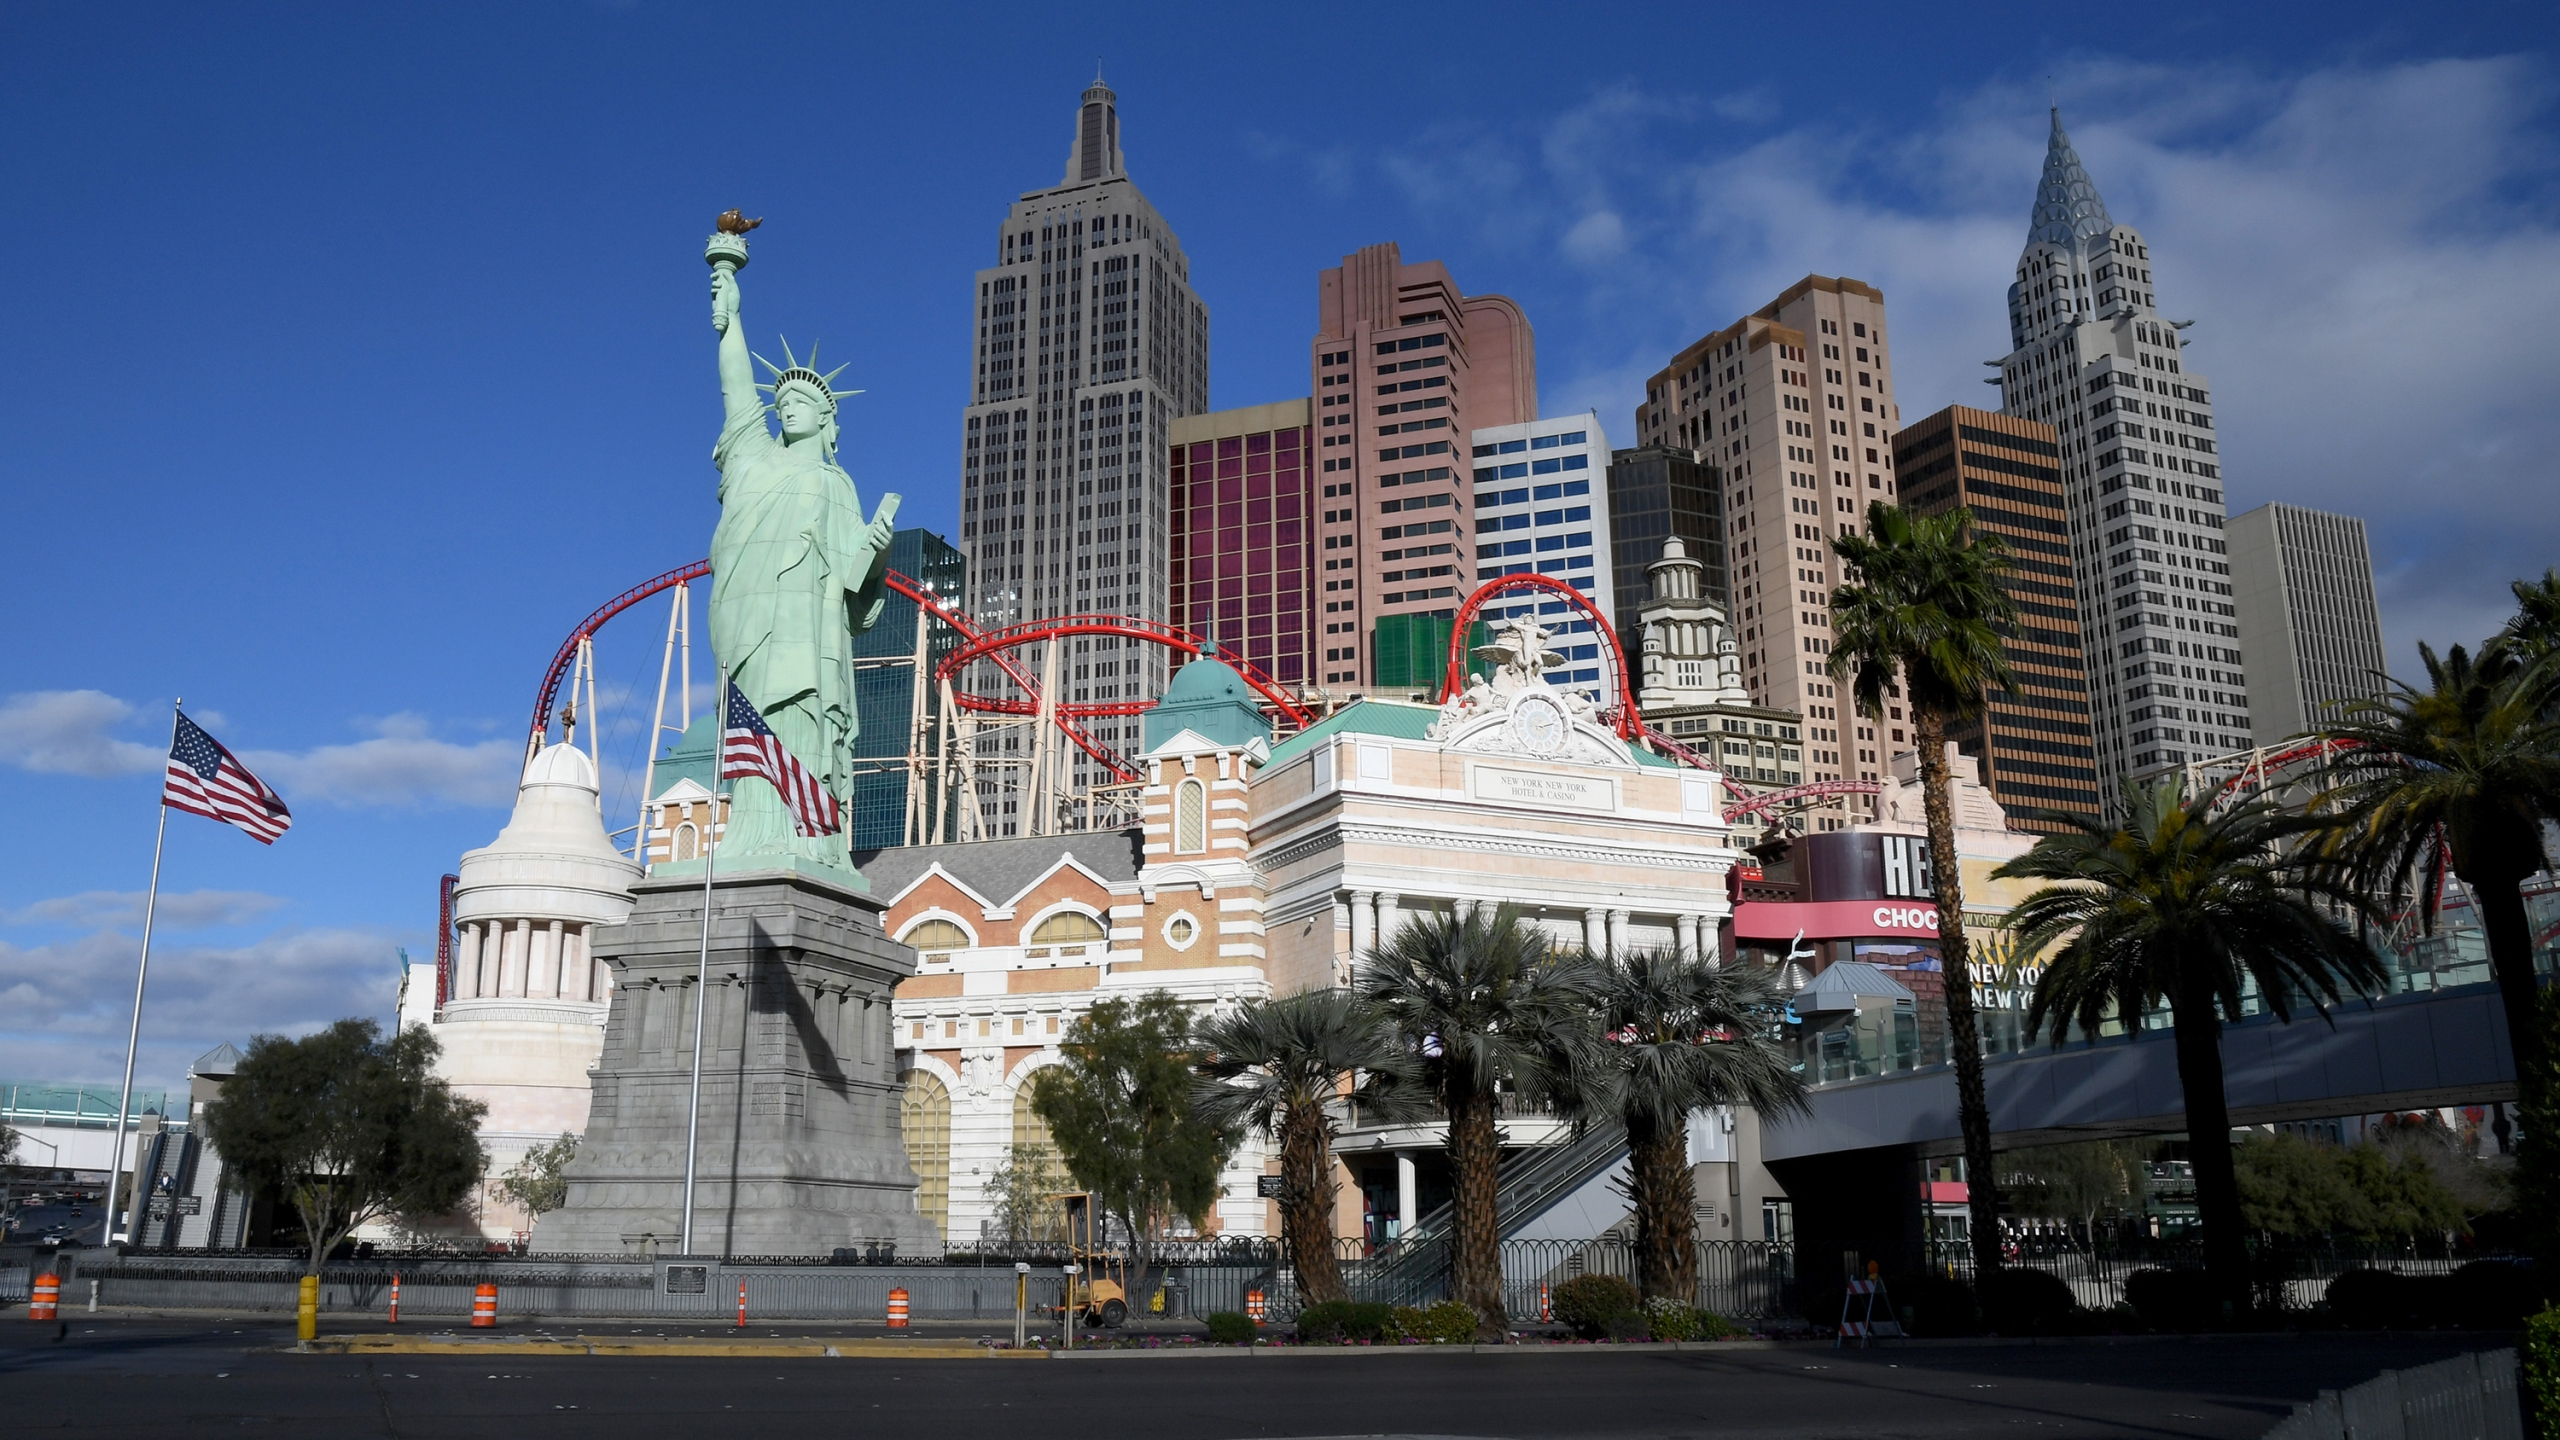 An exterior view shows the New York-New York Hotel & Casino after the Las Vegas Strip resort was closed as the coronavirus continues to spread across the United States on March 17, 2020 in Las Vegas, Nevada. (Ethan Miller/Getty Images)